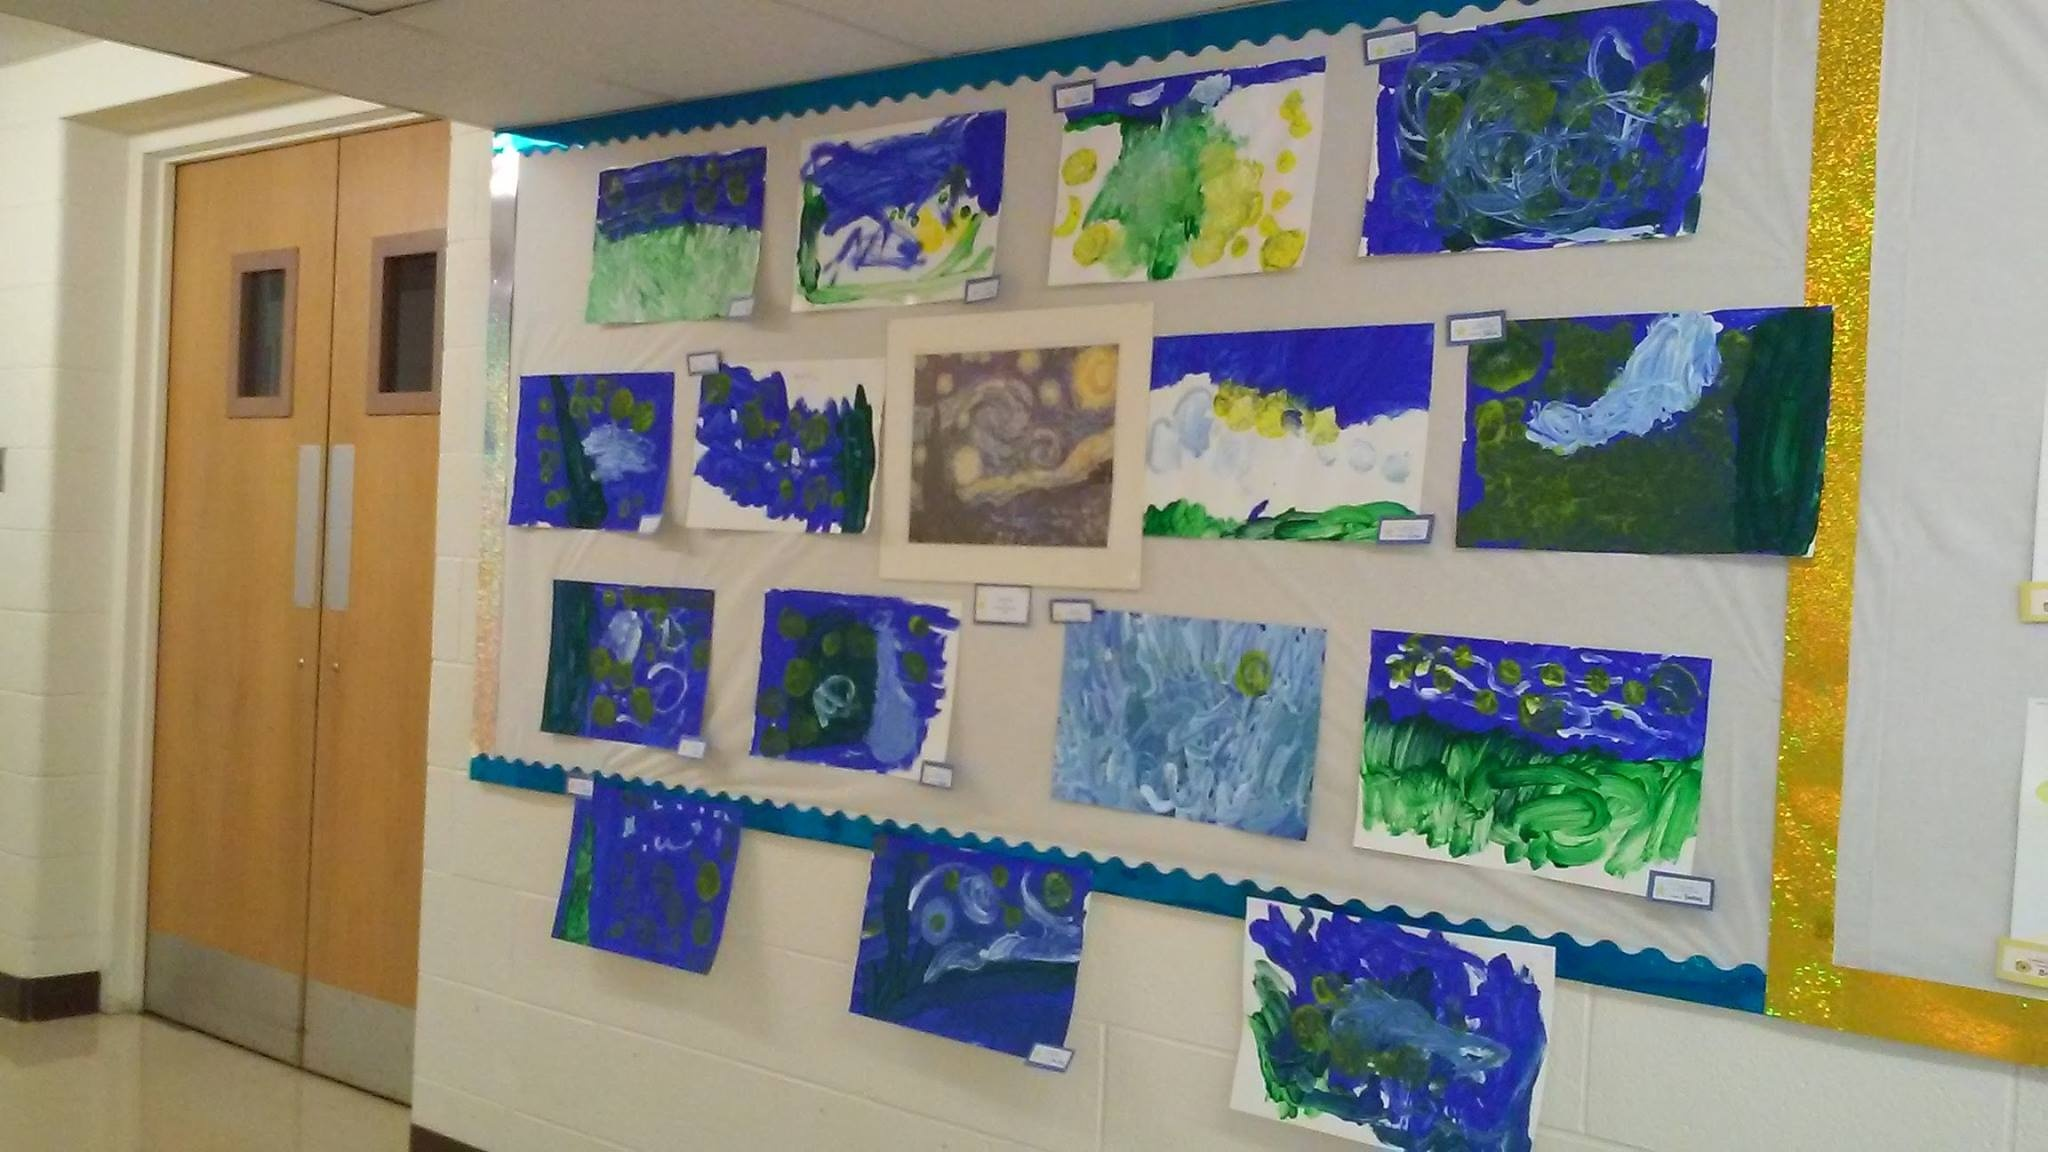 Van Gogh's Starry Night (PreK summer program)